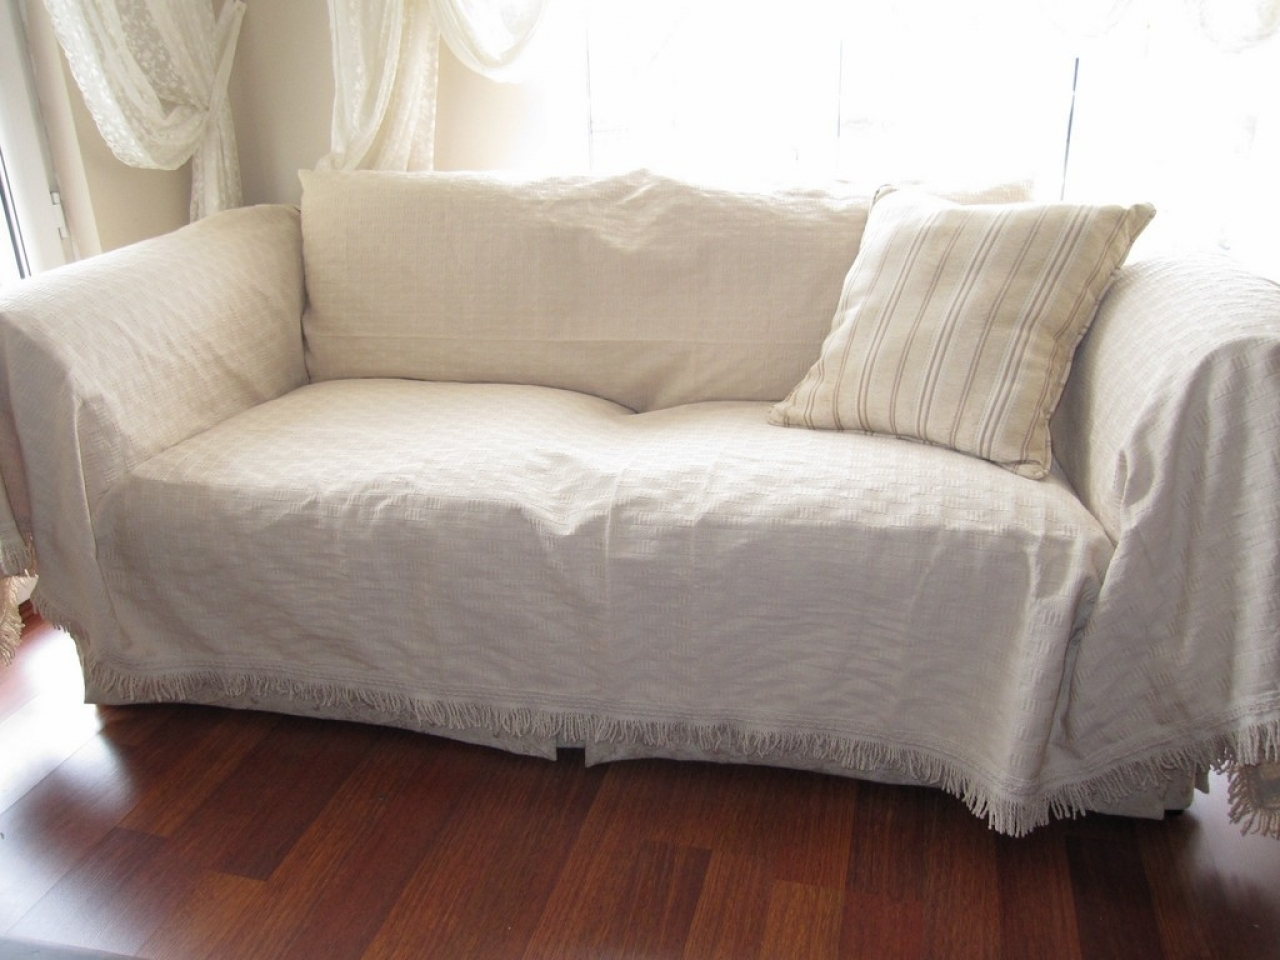 Sofas Center Beautiful Sofa With Washable Covers Pictures With Regard To Sofa With Washable Covers (Image 9 of 15)